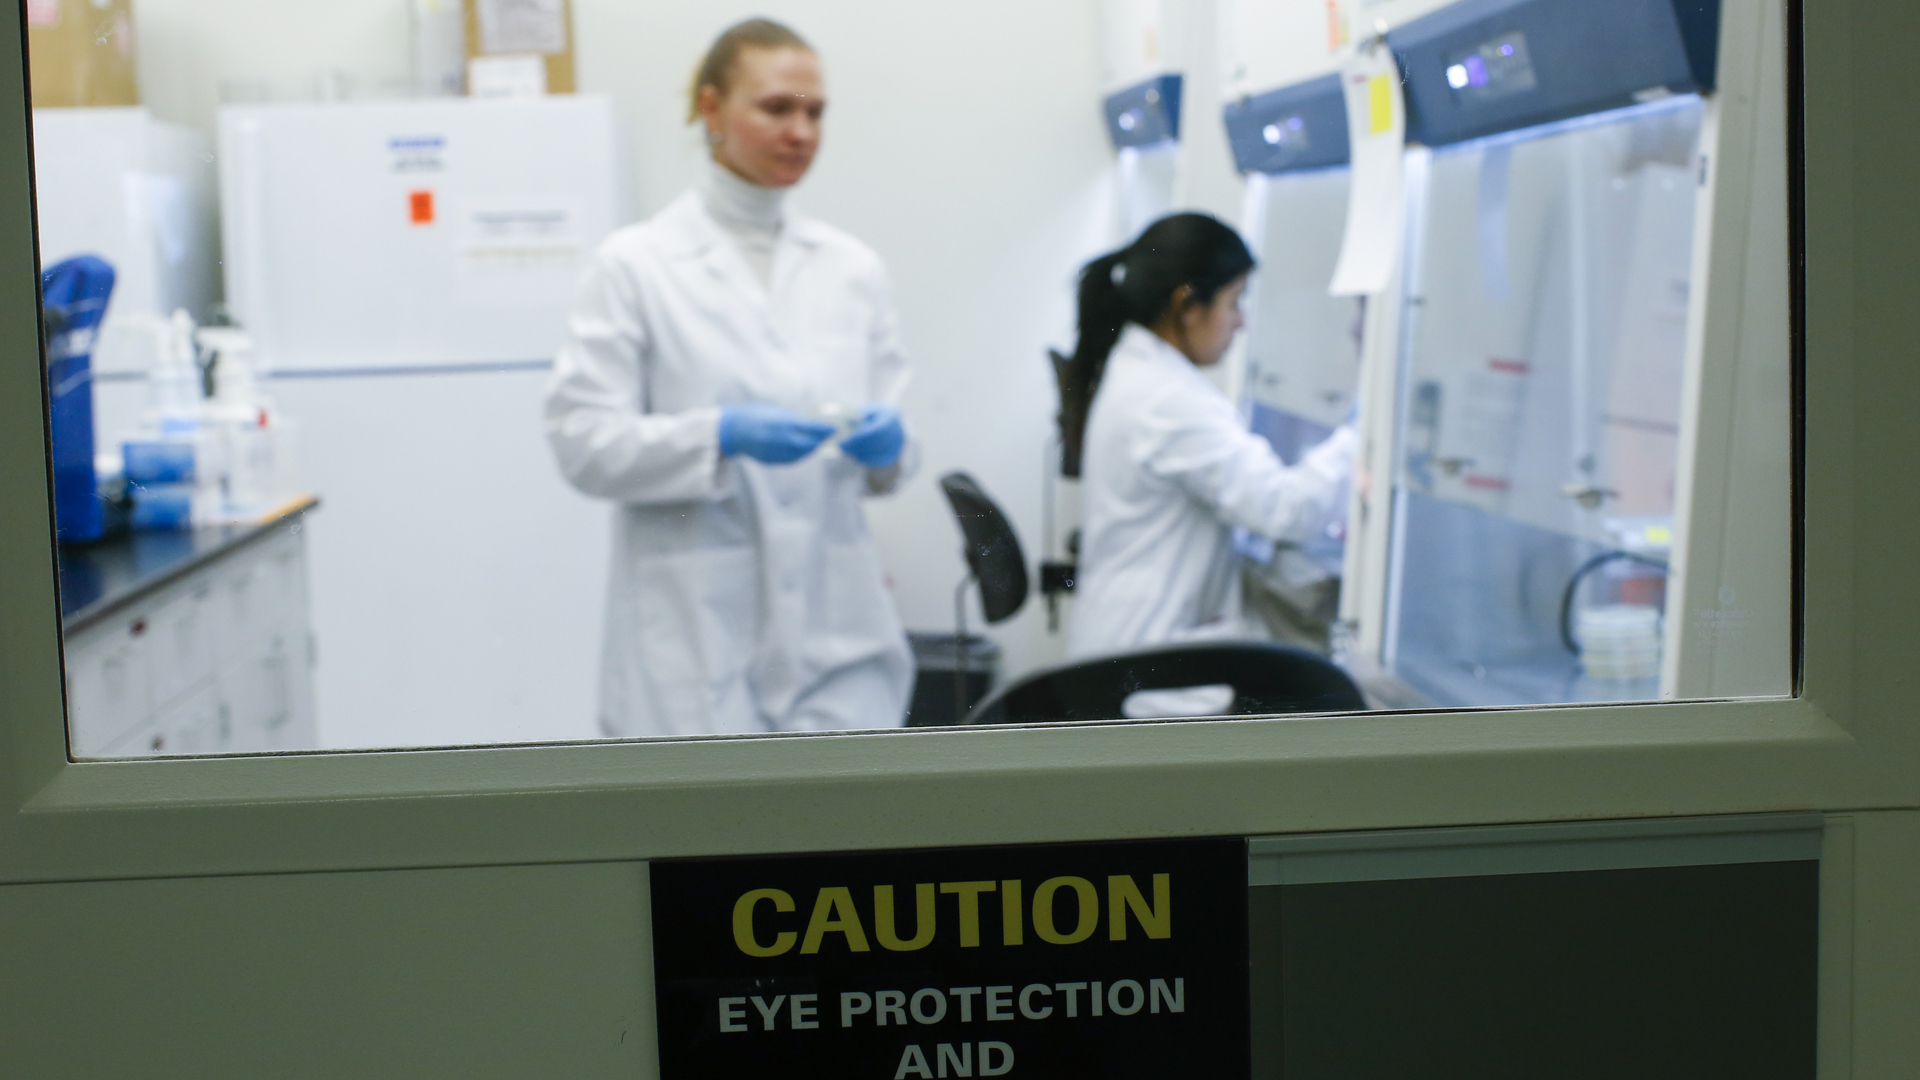 A researcher works in a lab that is developing testing for the COVID-19 coronavirus at Hackensack Meridian Health Center for Discovery and Innovation on February 28, 2020 in Nutley, New Jersey. (PCredit: Kena Betancur/Getty Images)